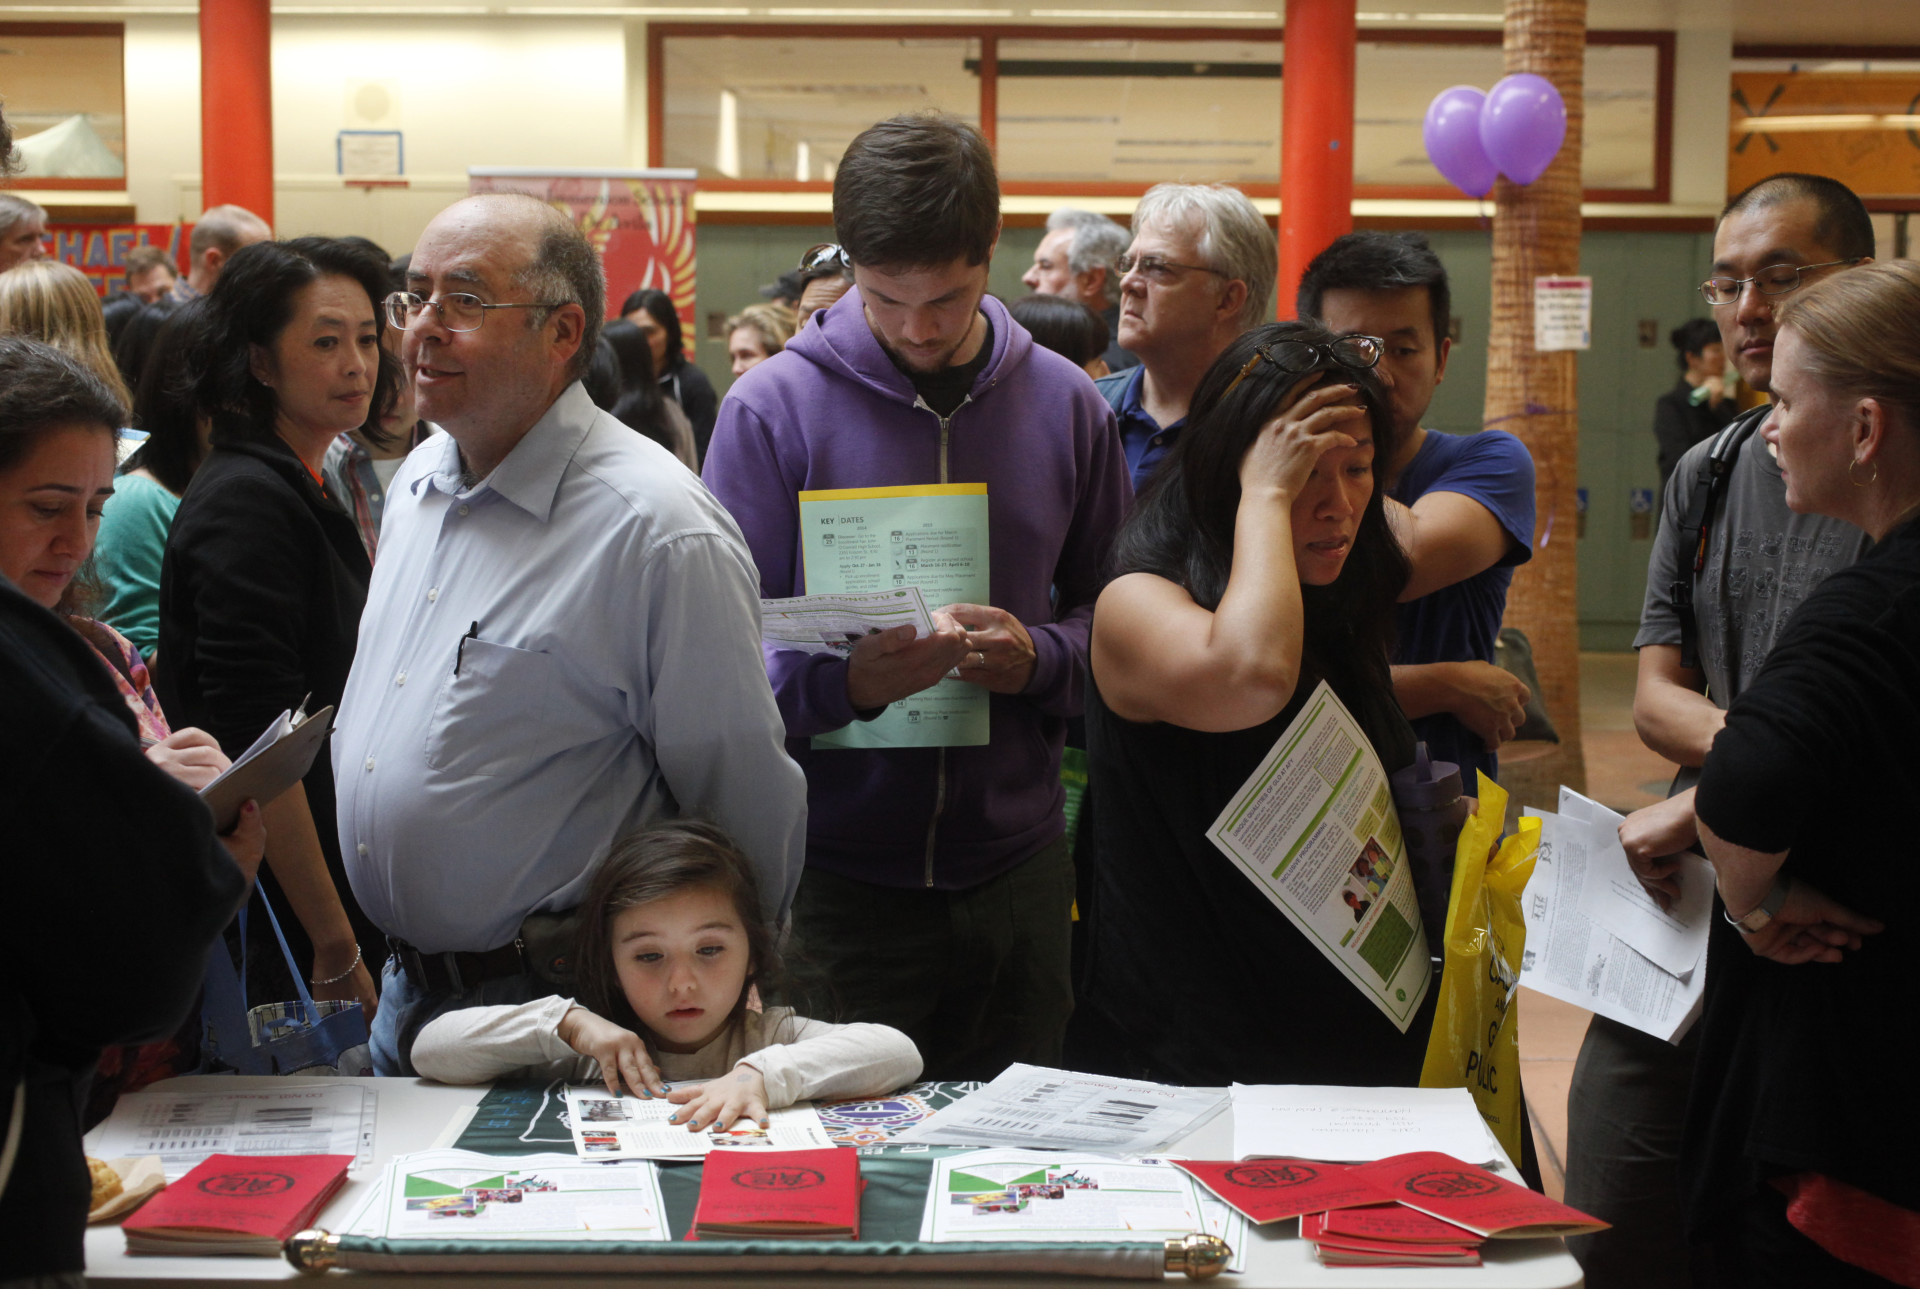 From left, Dina Bakour and Said Nuseiben talk with a representative of Alice Fong Yu Alternative School as Nuseiben's daughter. Kindah Nuseibeh, examines pamphlets while Brendan VanderMei, center, and Lily Tung Crystal, right, chat at the SFUSD school enrollment fair at John O'Connell High School Oct. 25, 2014 in San Francisco, Calif.